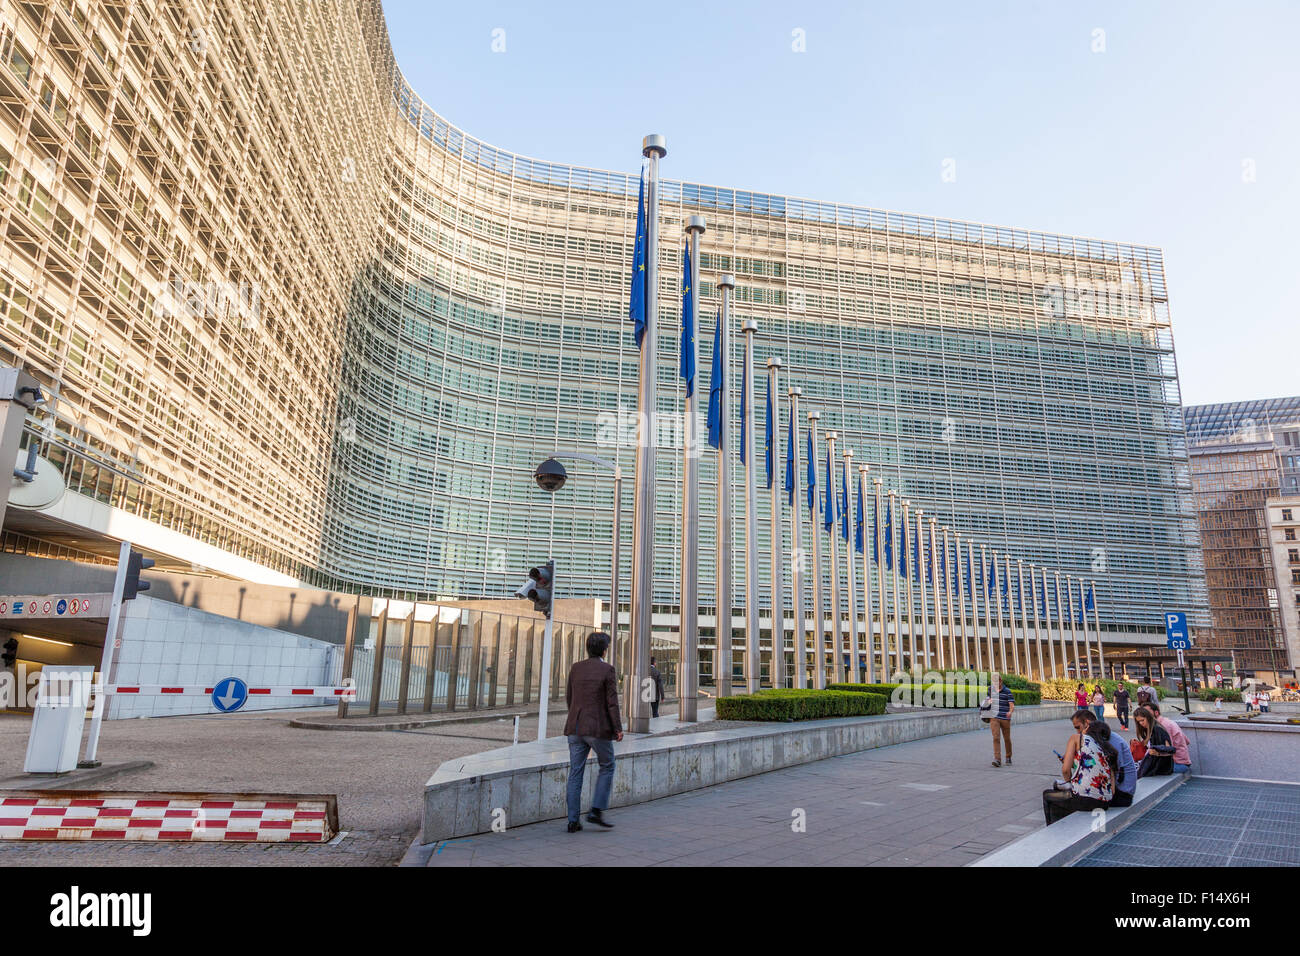 Le Berlaymont -  the European Comission building in Brussels. August 21, 2015 in Brussels, Belgium - Stock Image